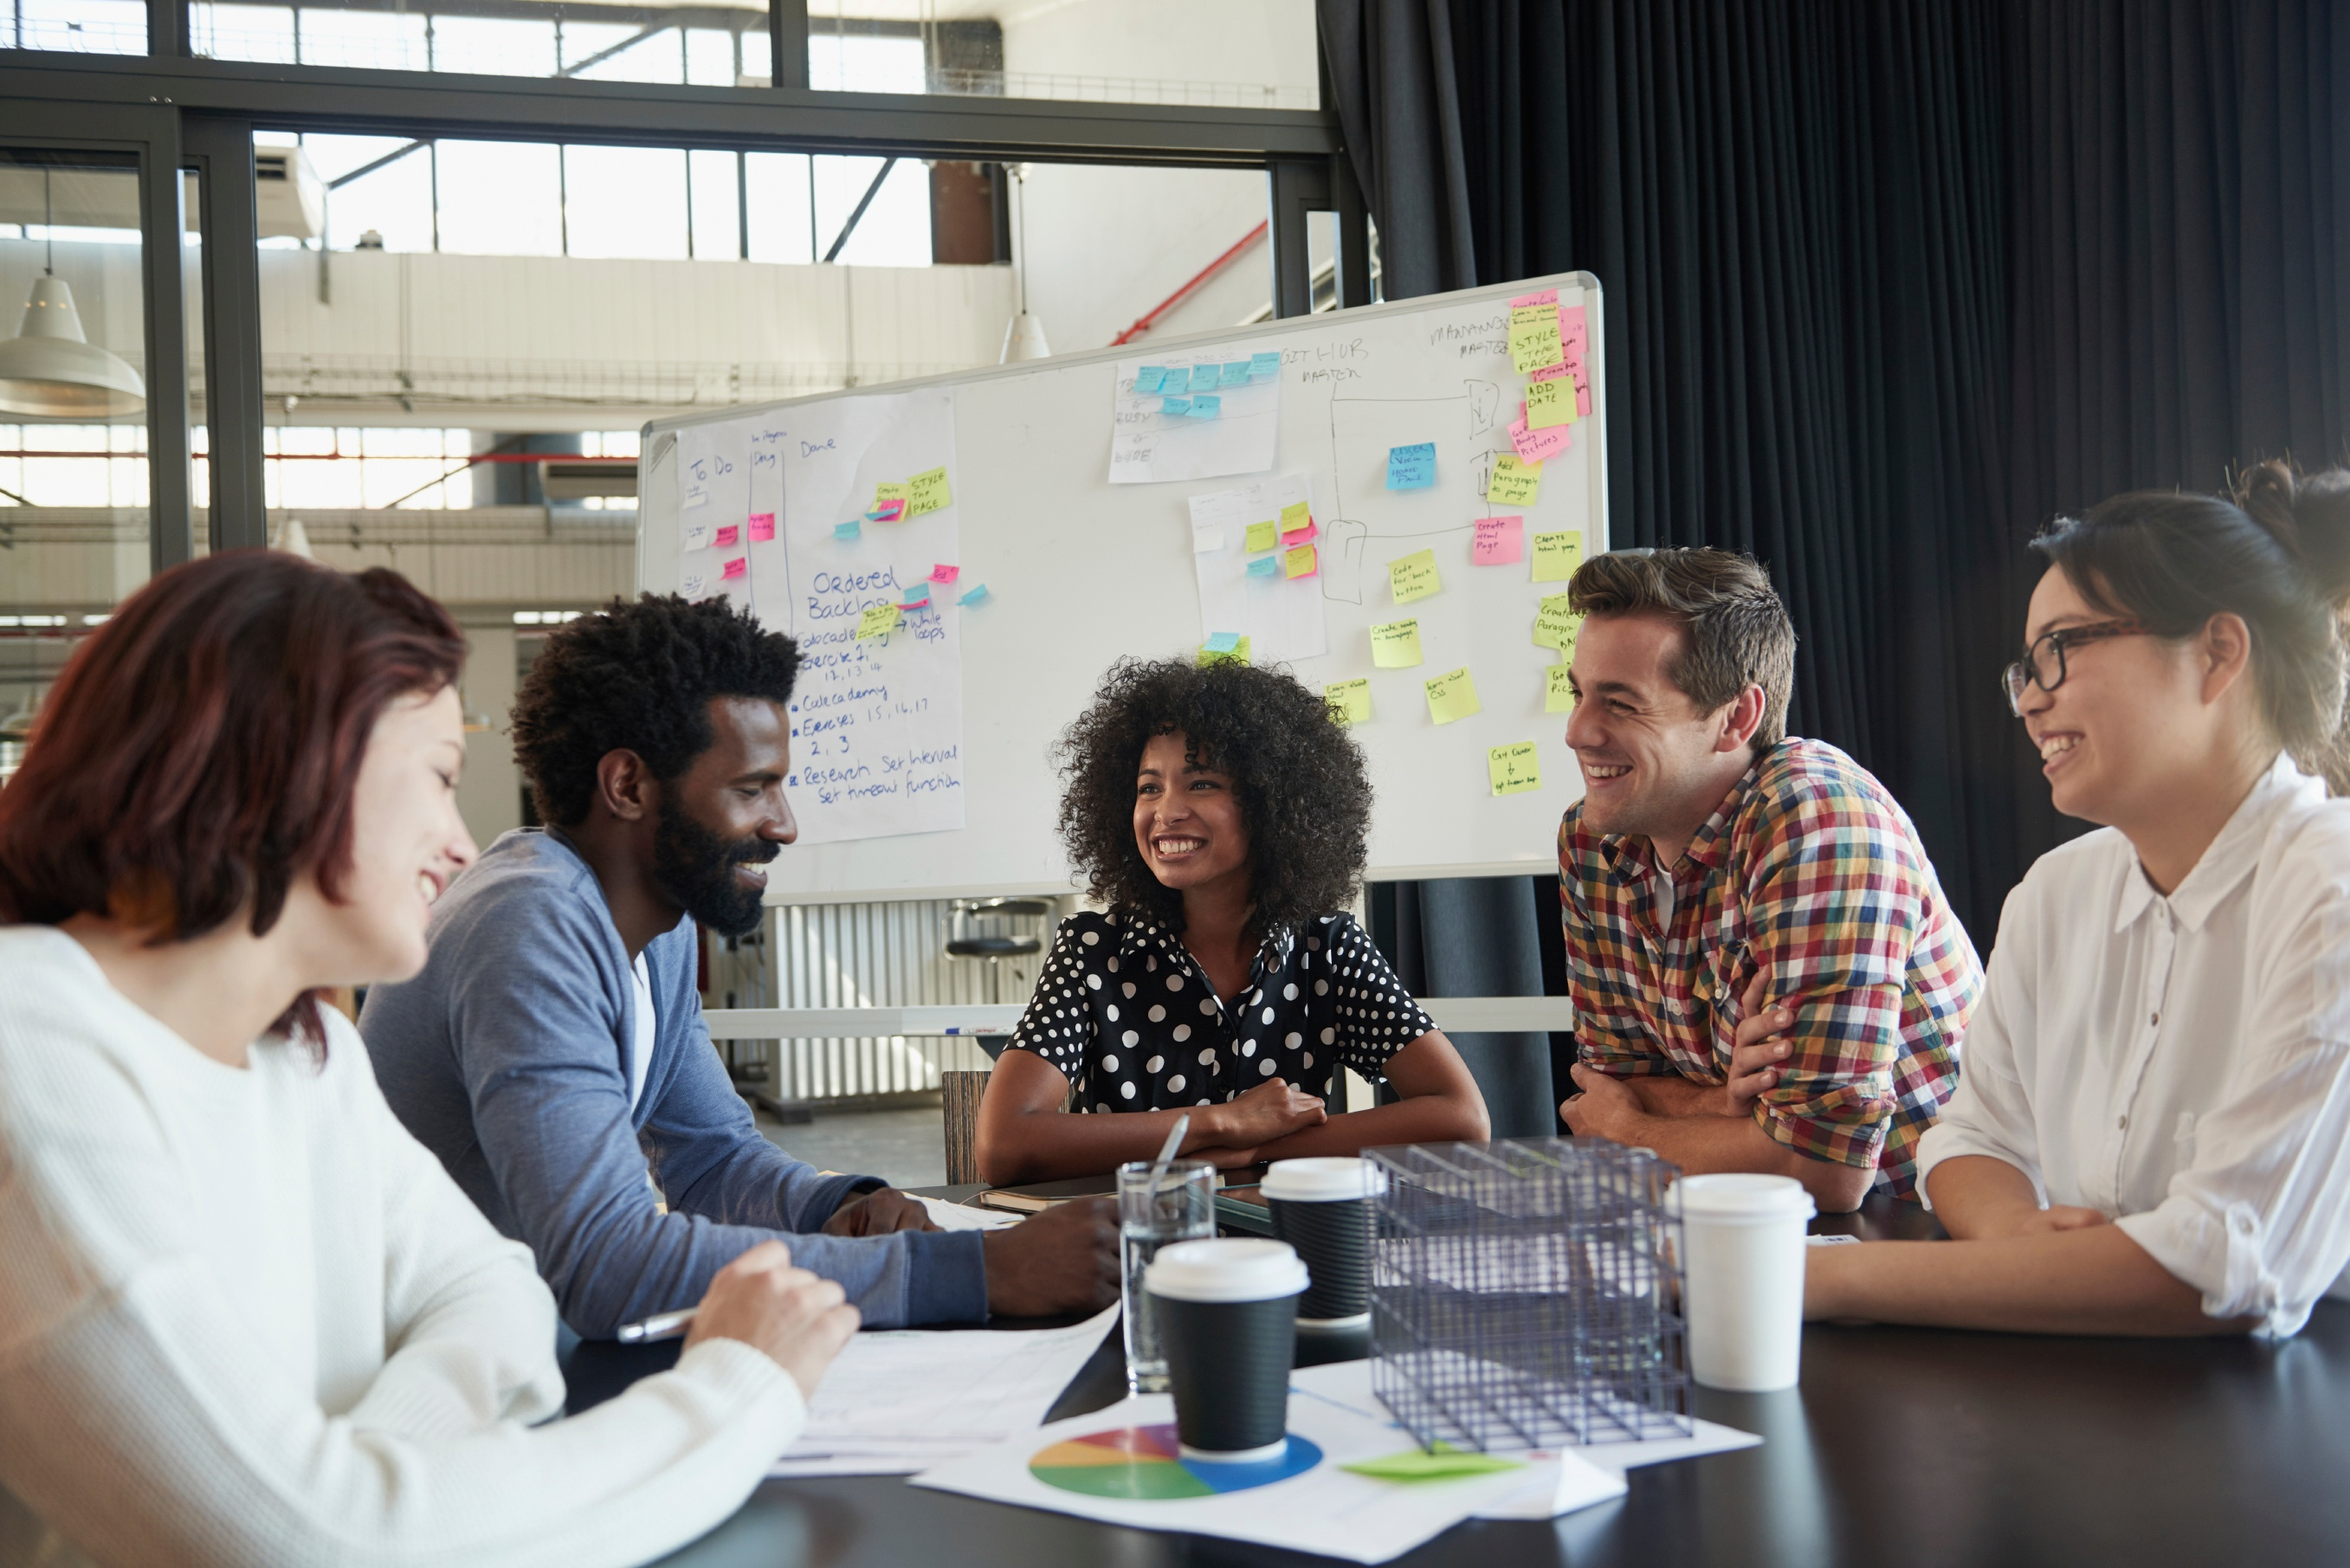 7 Questions To Ask On the Road to Creating a More Effective Unique Value Proposition